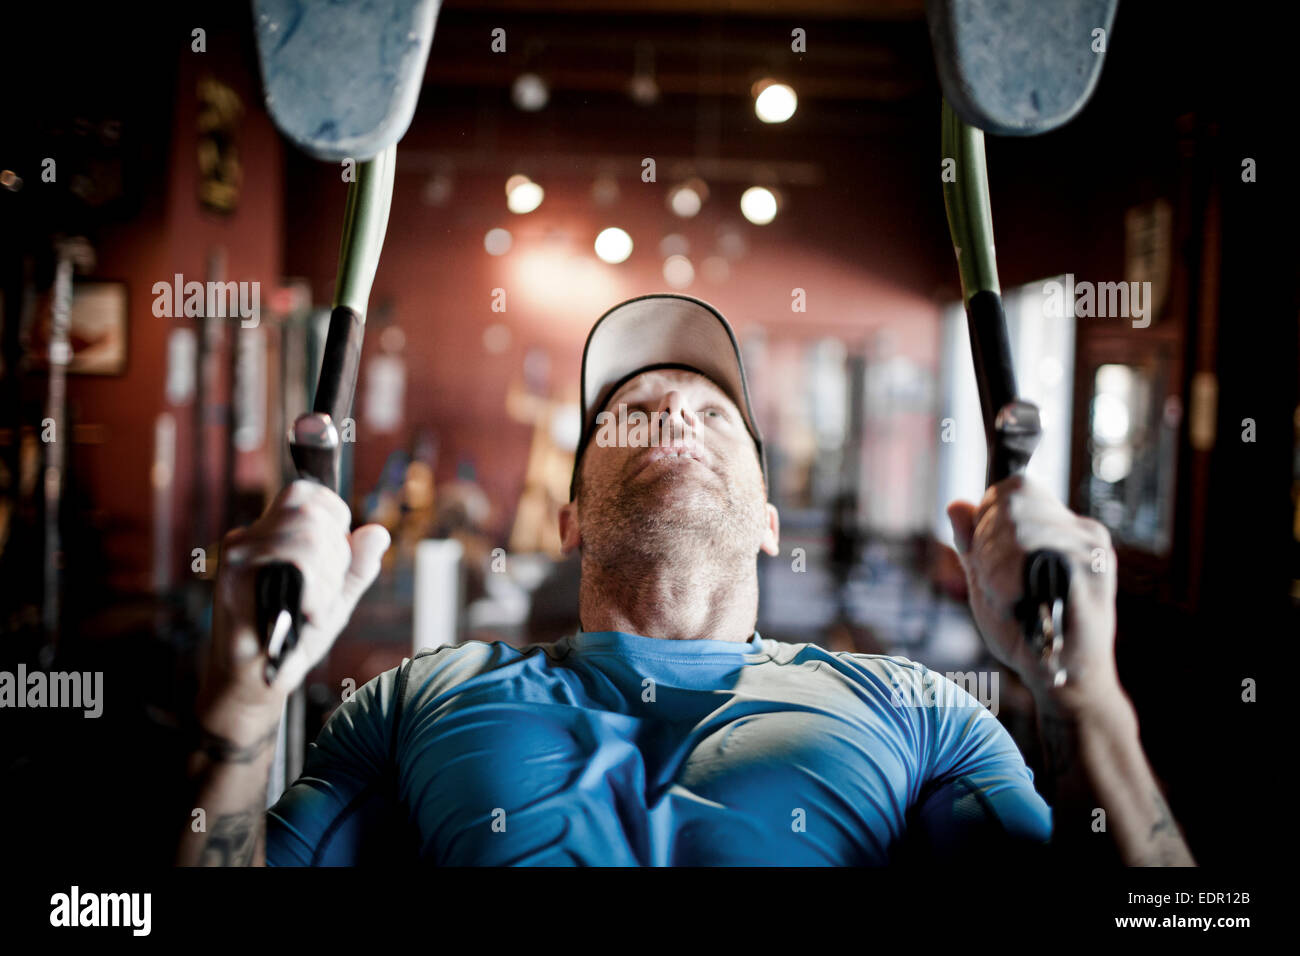 Mountain Athlete Training - Working out at the gym. - Stock Image